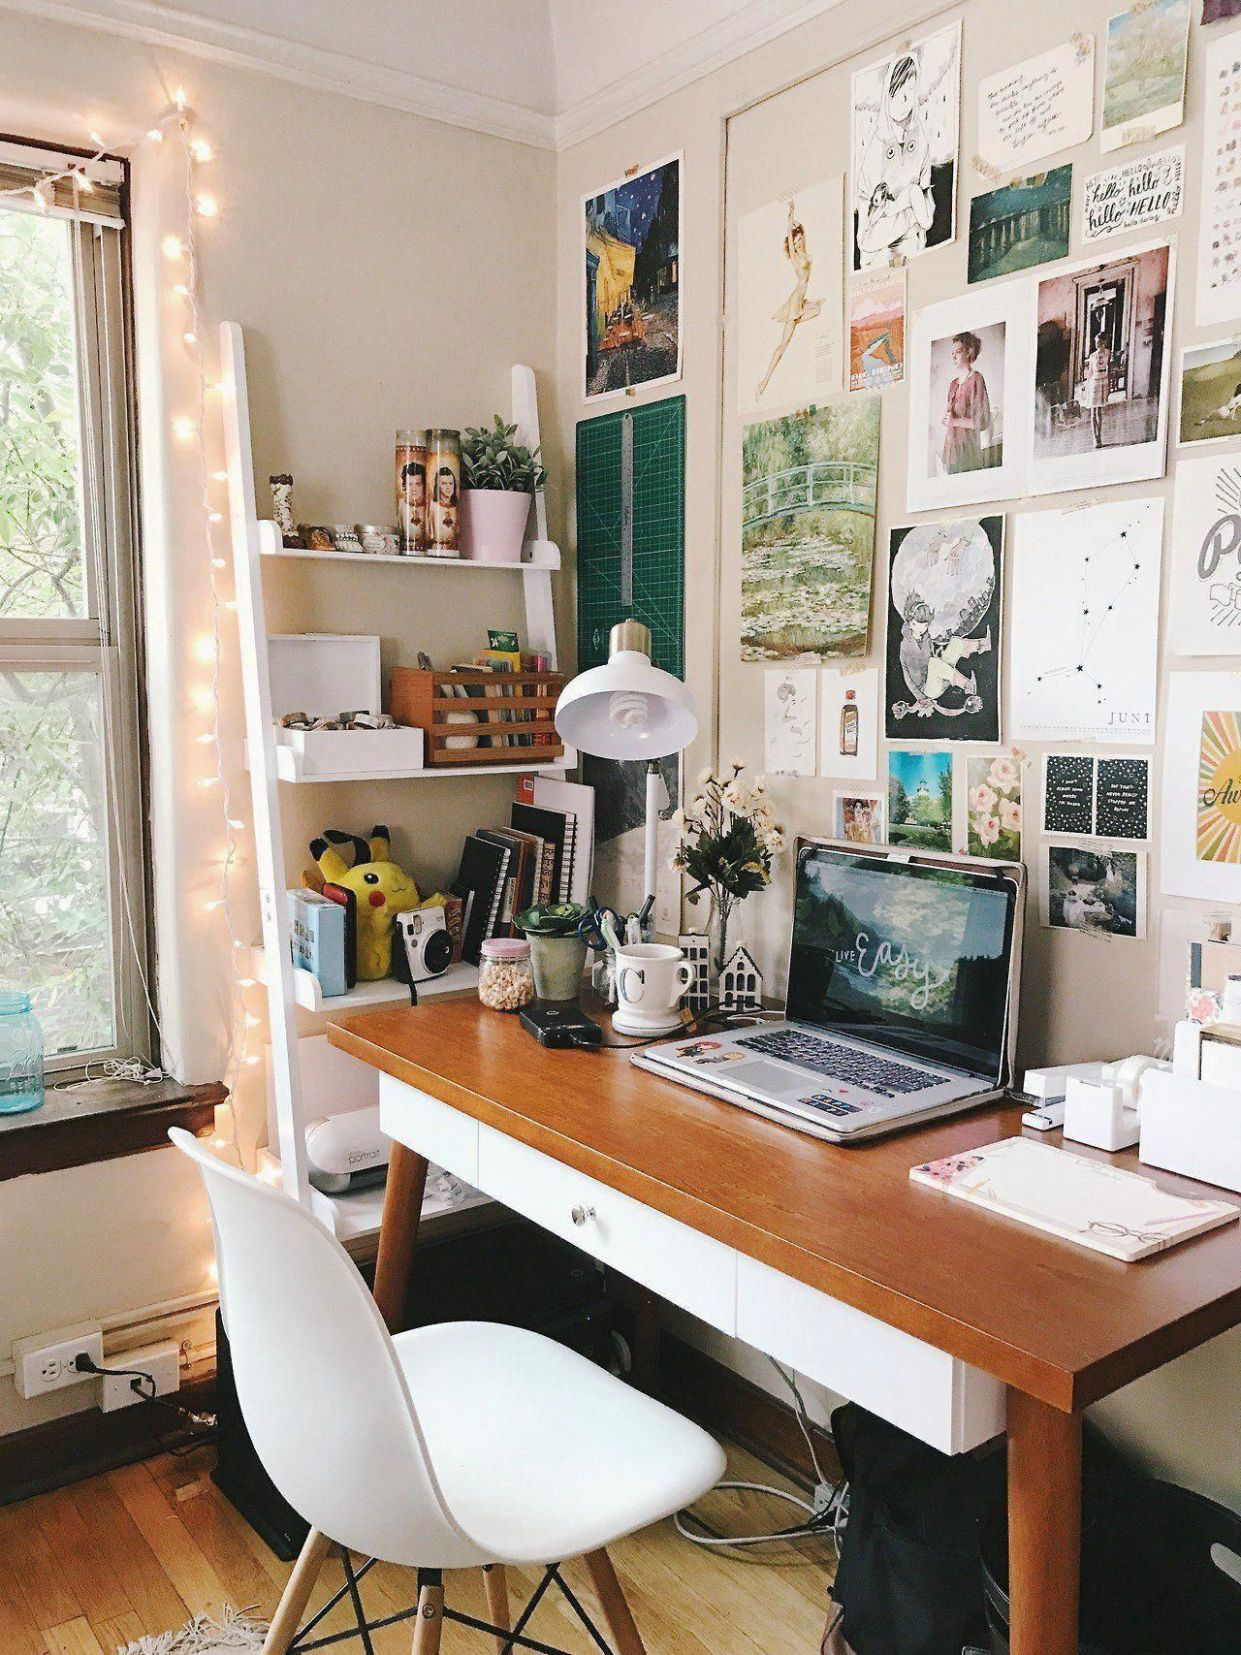 Pin by cola on Room | Home office decor, Simple desk decor, Interior